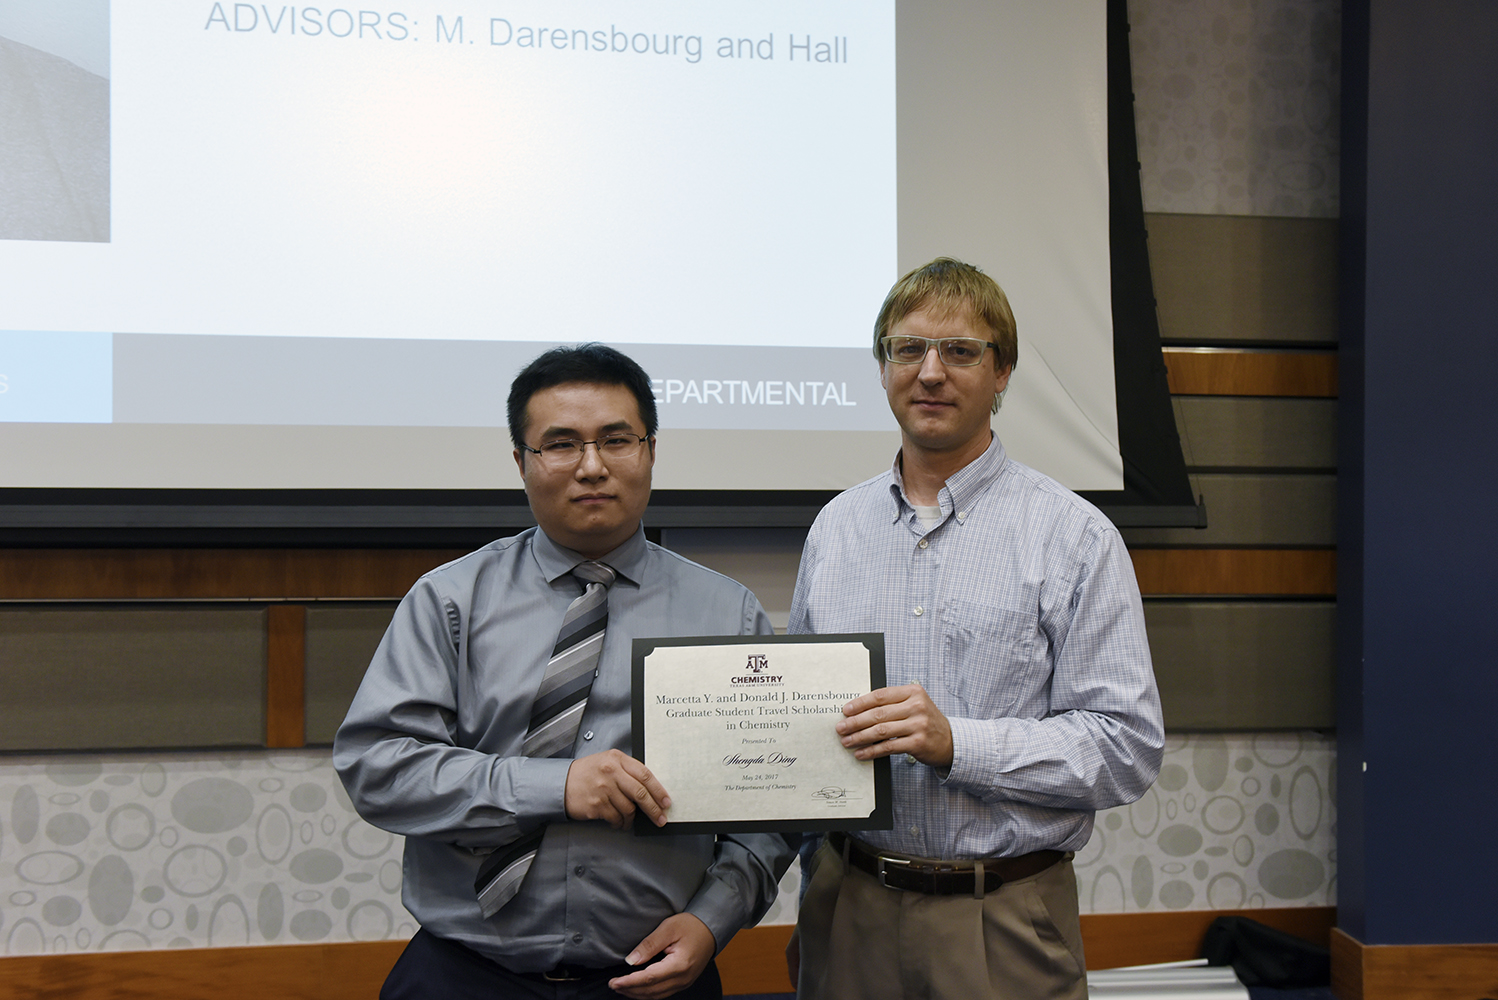 A chemistry graduate student receives an award from a chemistry professor